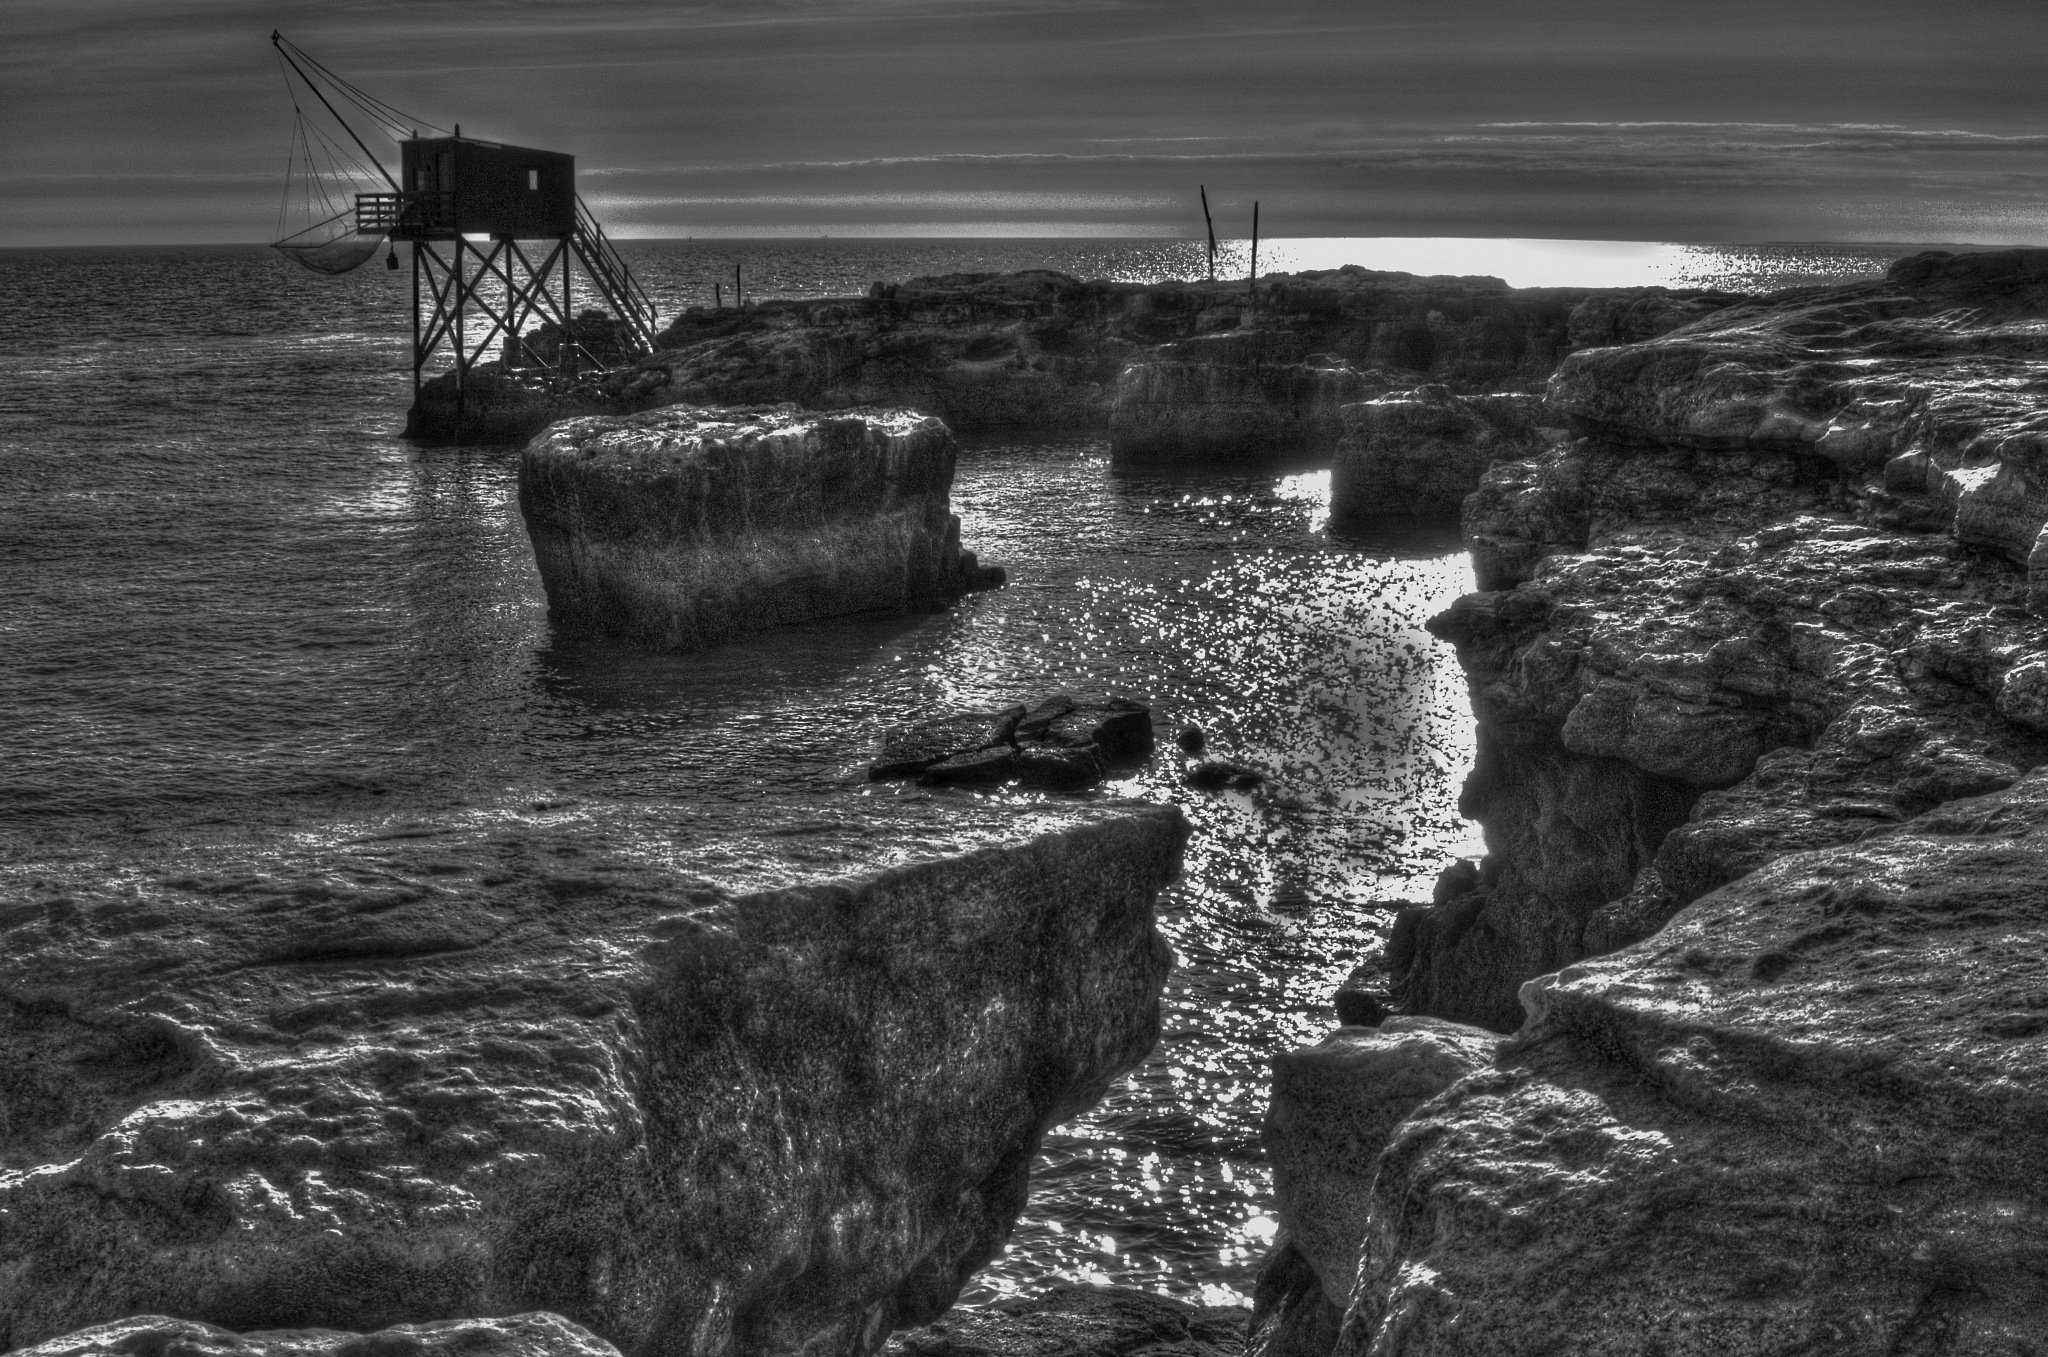 Lonely Shrimper's Hut. Black and White by stephen.harding.735